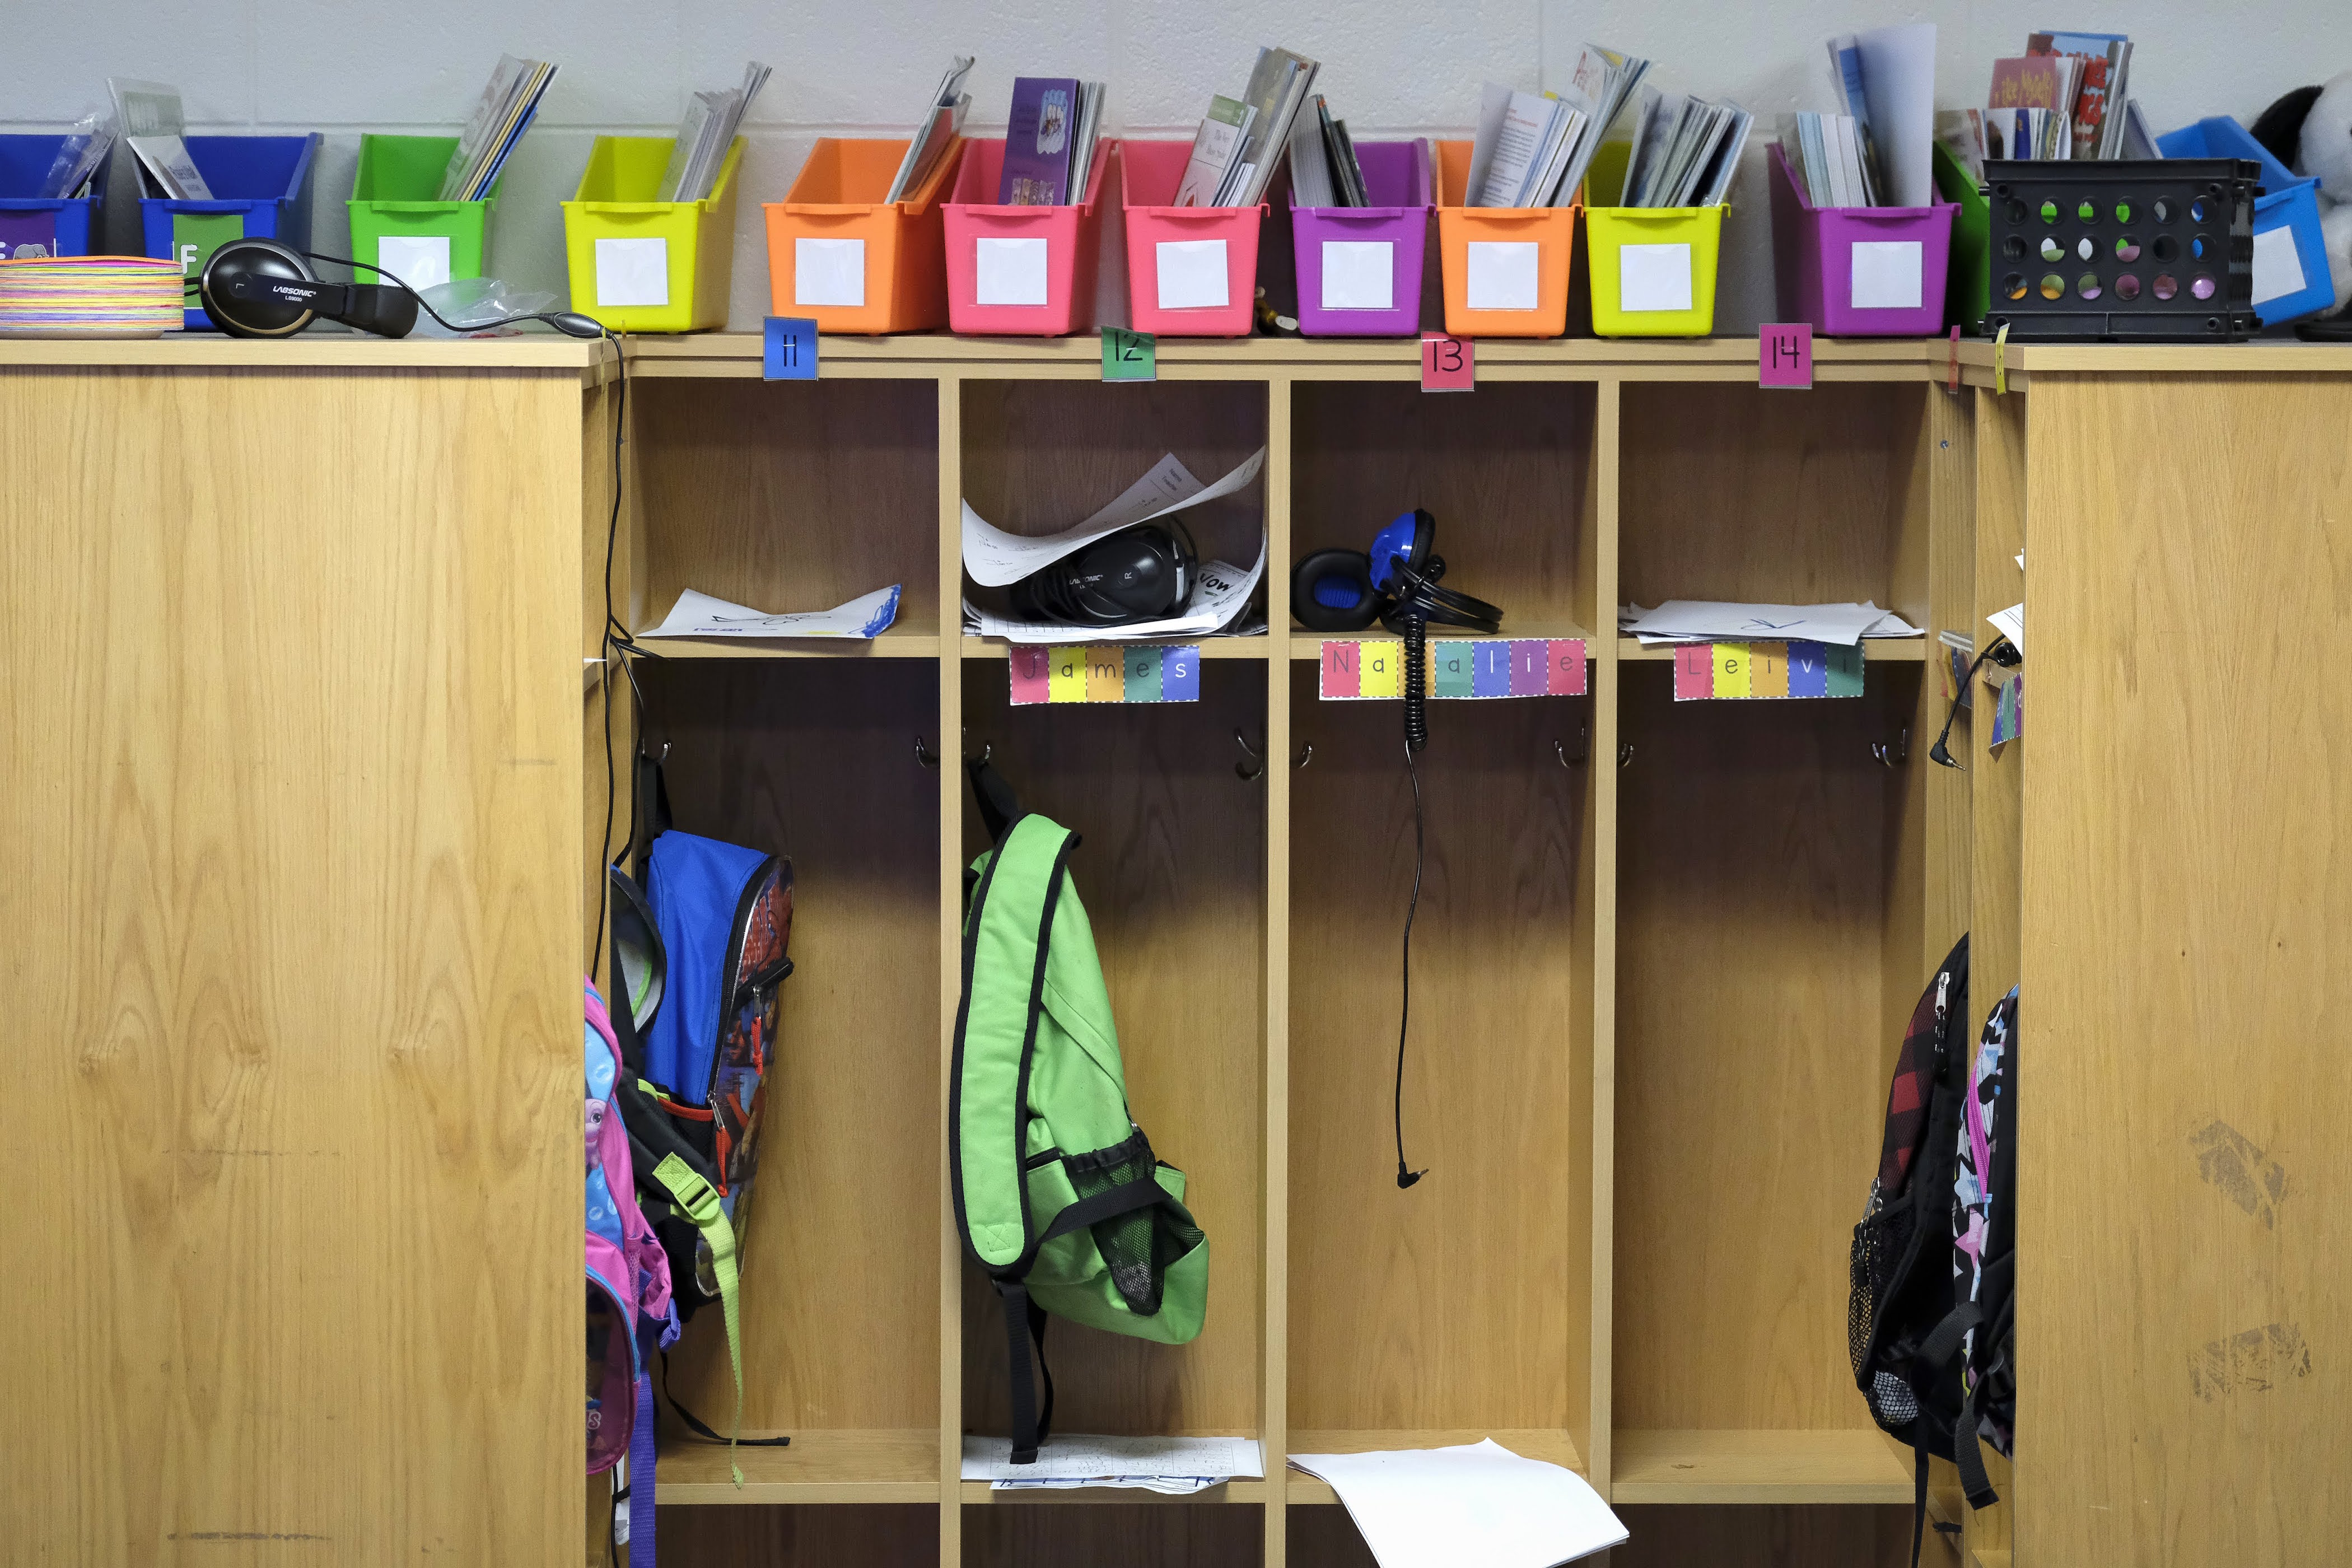 Student cubbies in a classroom Thomas Gregg Neighborhood School, an elementary school in Indianapolis, Indiana. —April, 2019— Photo by Alan Petersime/Chalkbeat